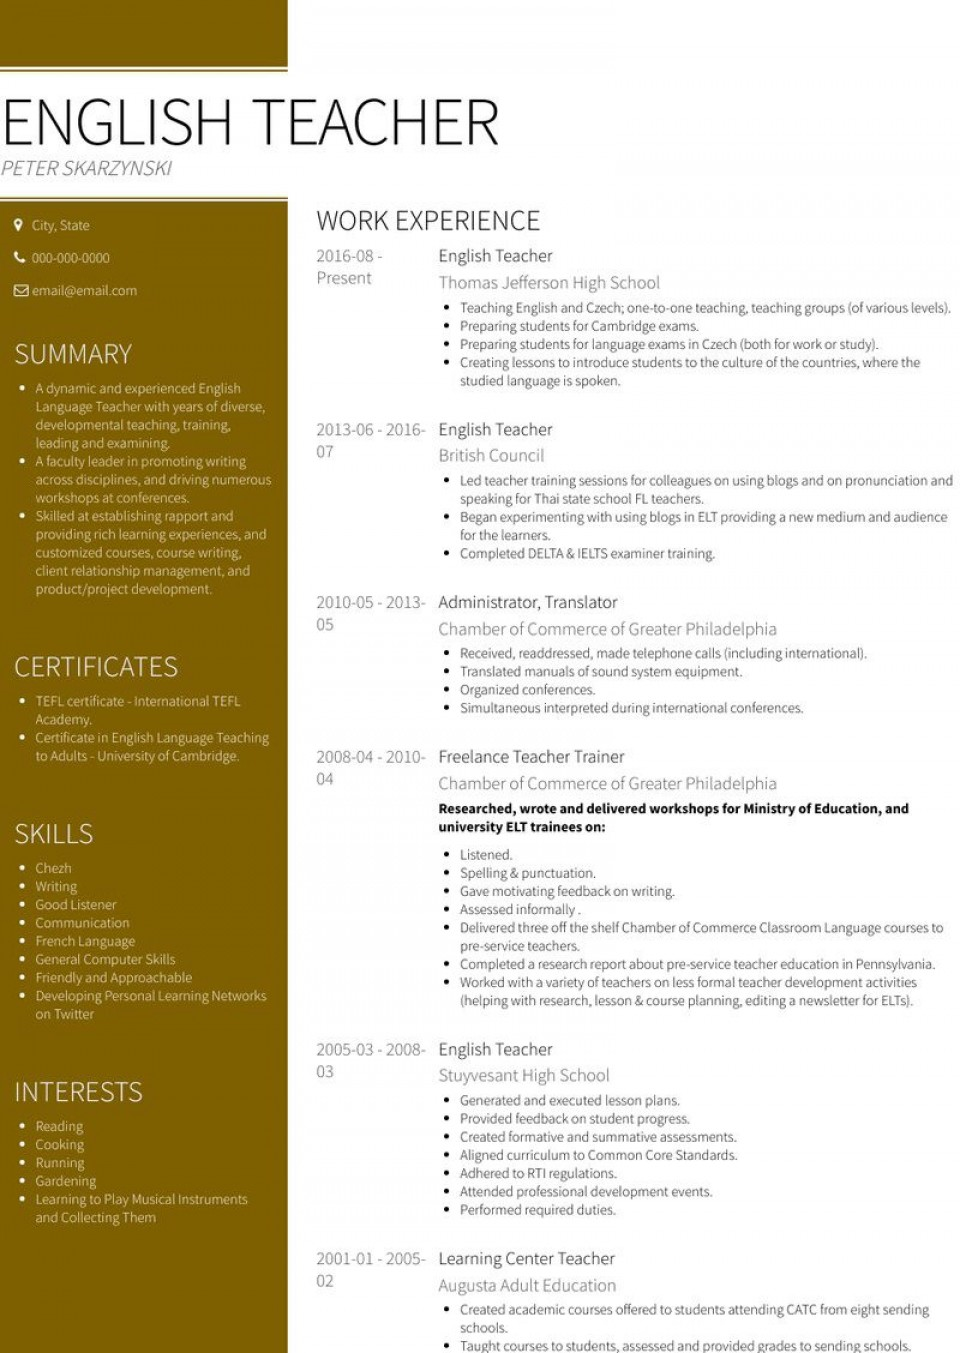 007 Archaicawful Resume Template For Teacher High Resolution  Australia Microsoft Word Sample960